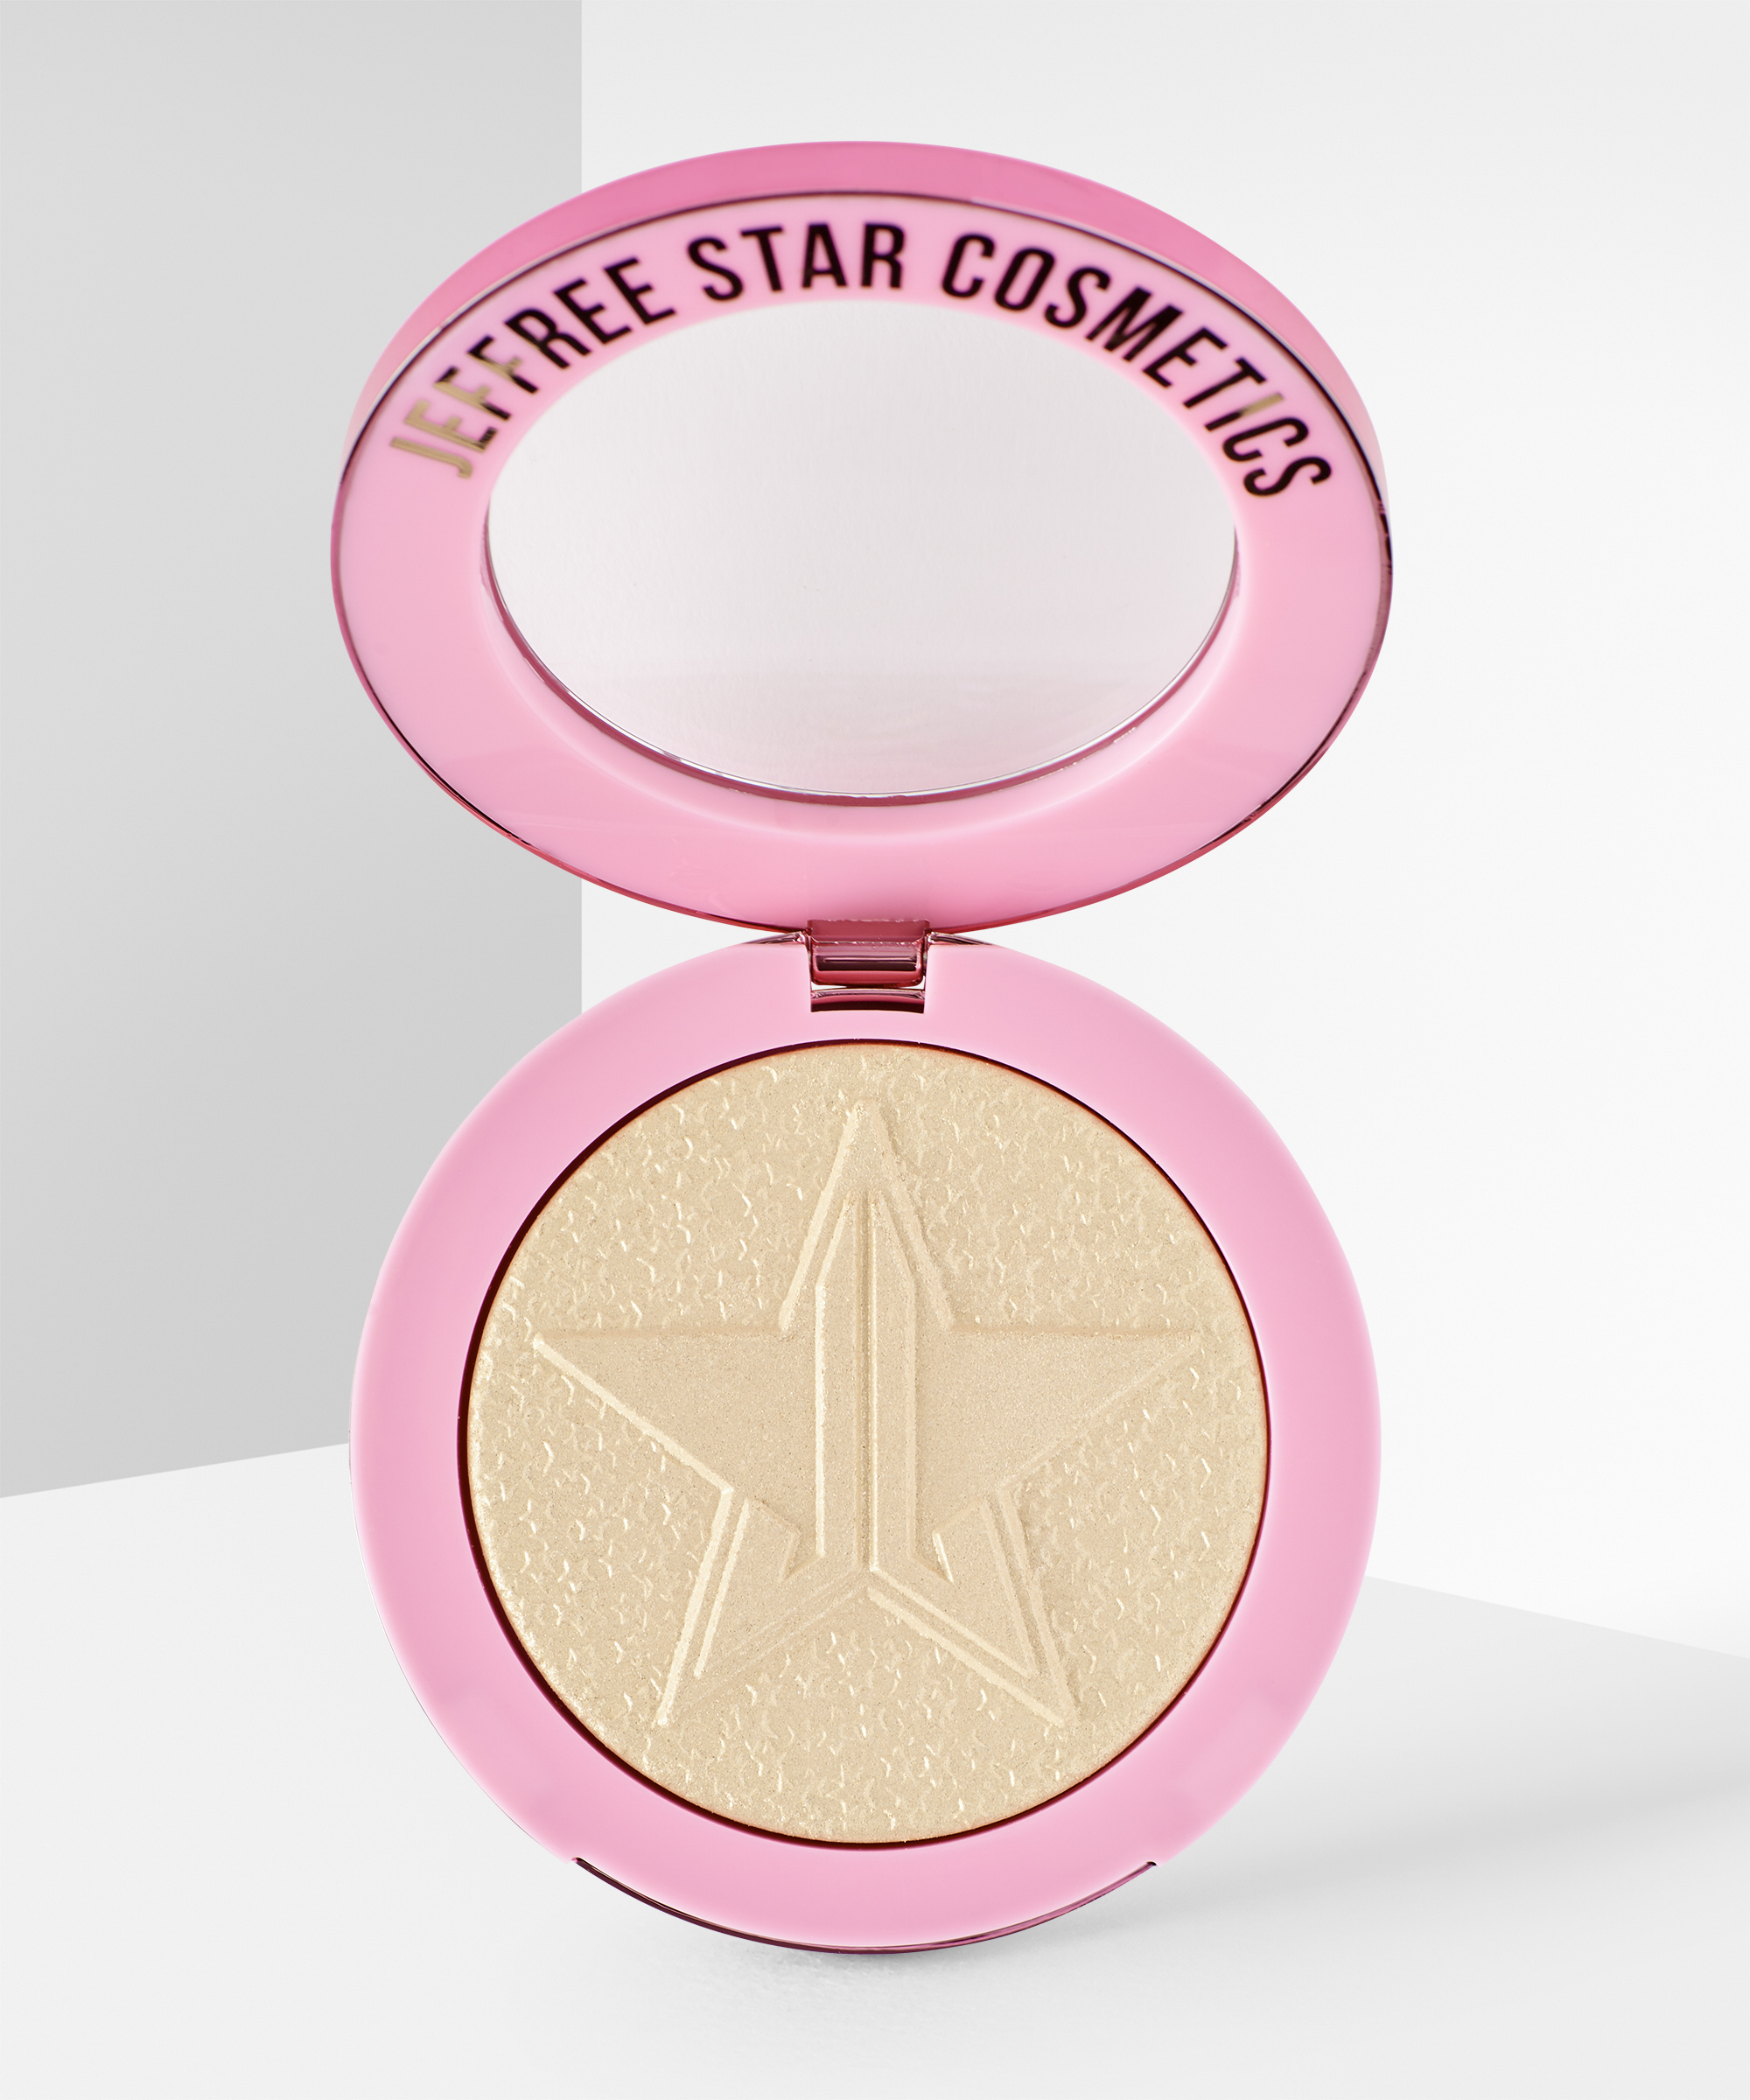 Jeffree Star Cosmetics Supreme Frost At BEAUTY BAY